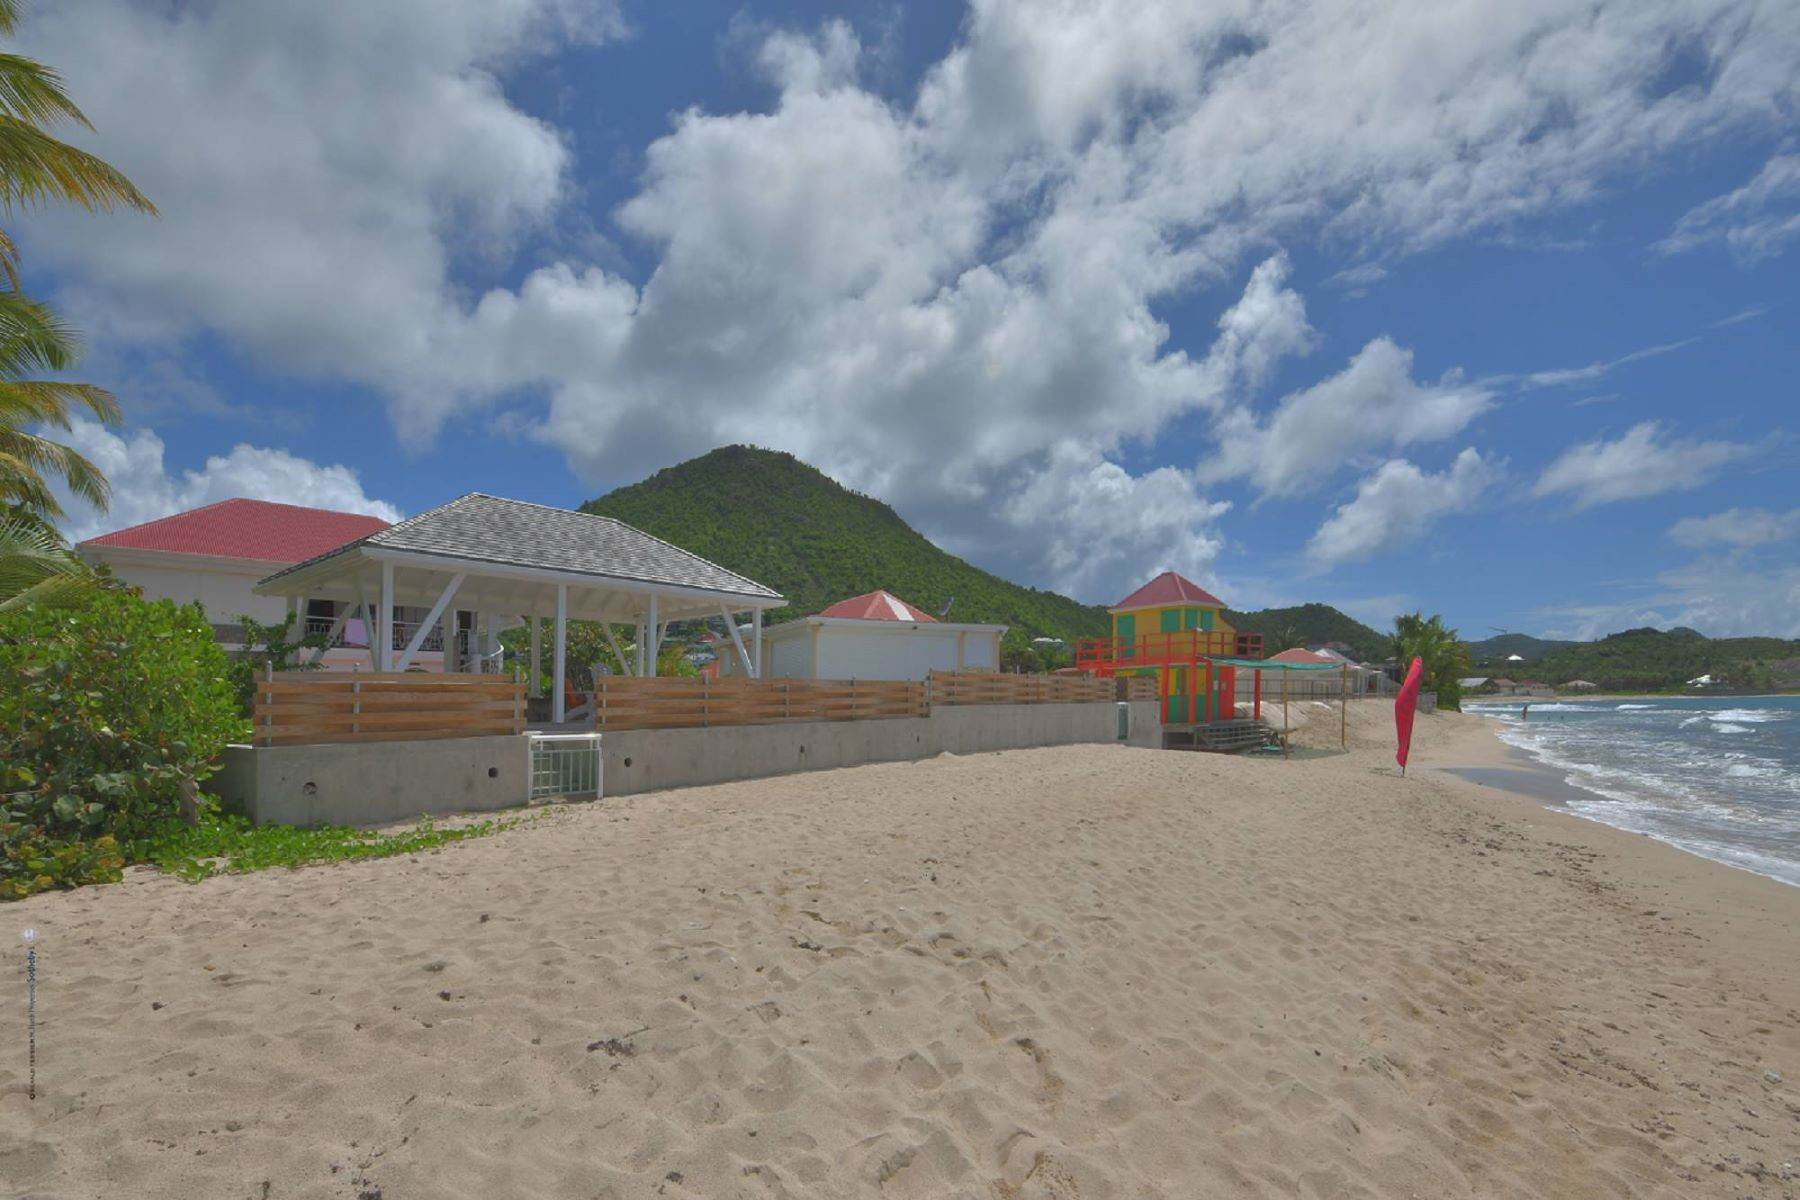 Single Family Homes for Sale at Villa Kerjan Lorient Other St. Barthelemy, Cities In St. Barthelemy 97133 St. Barthelemy